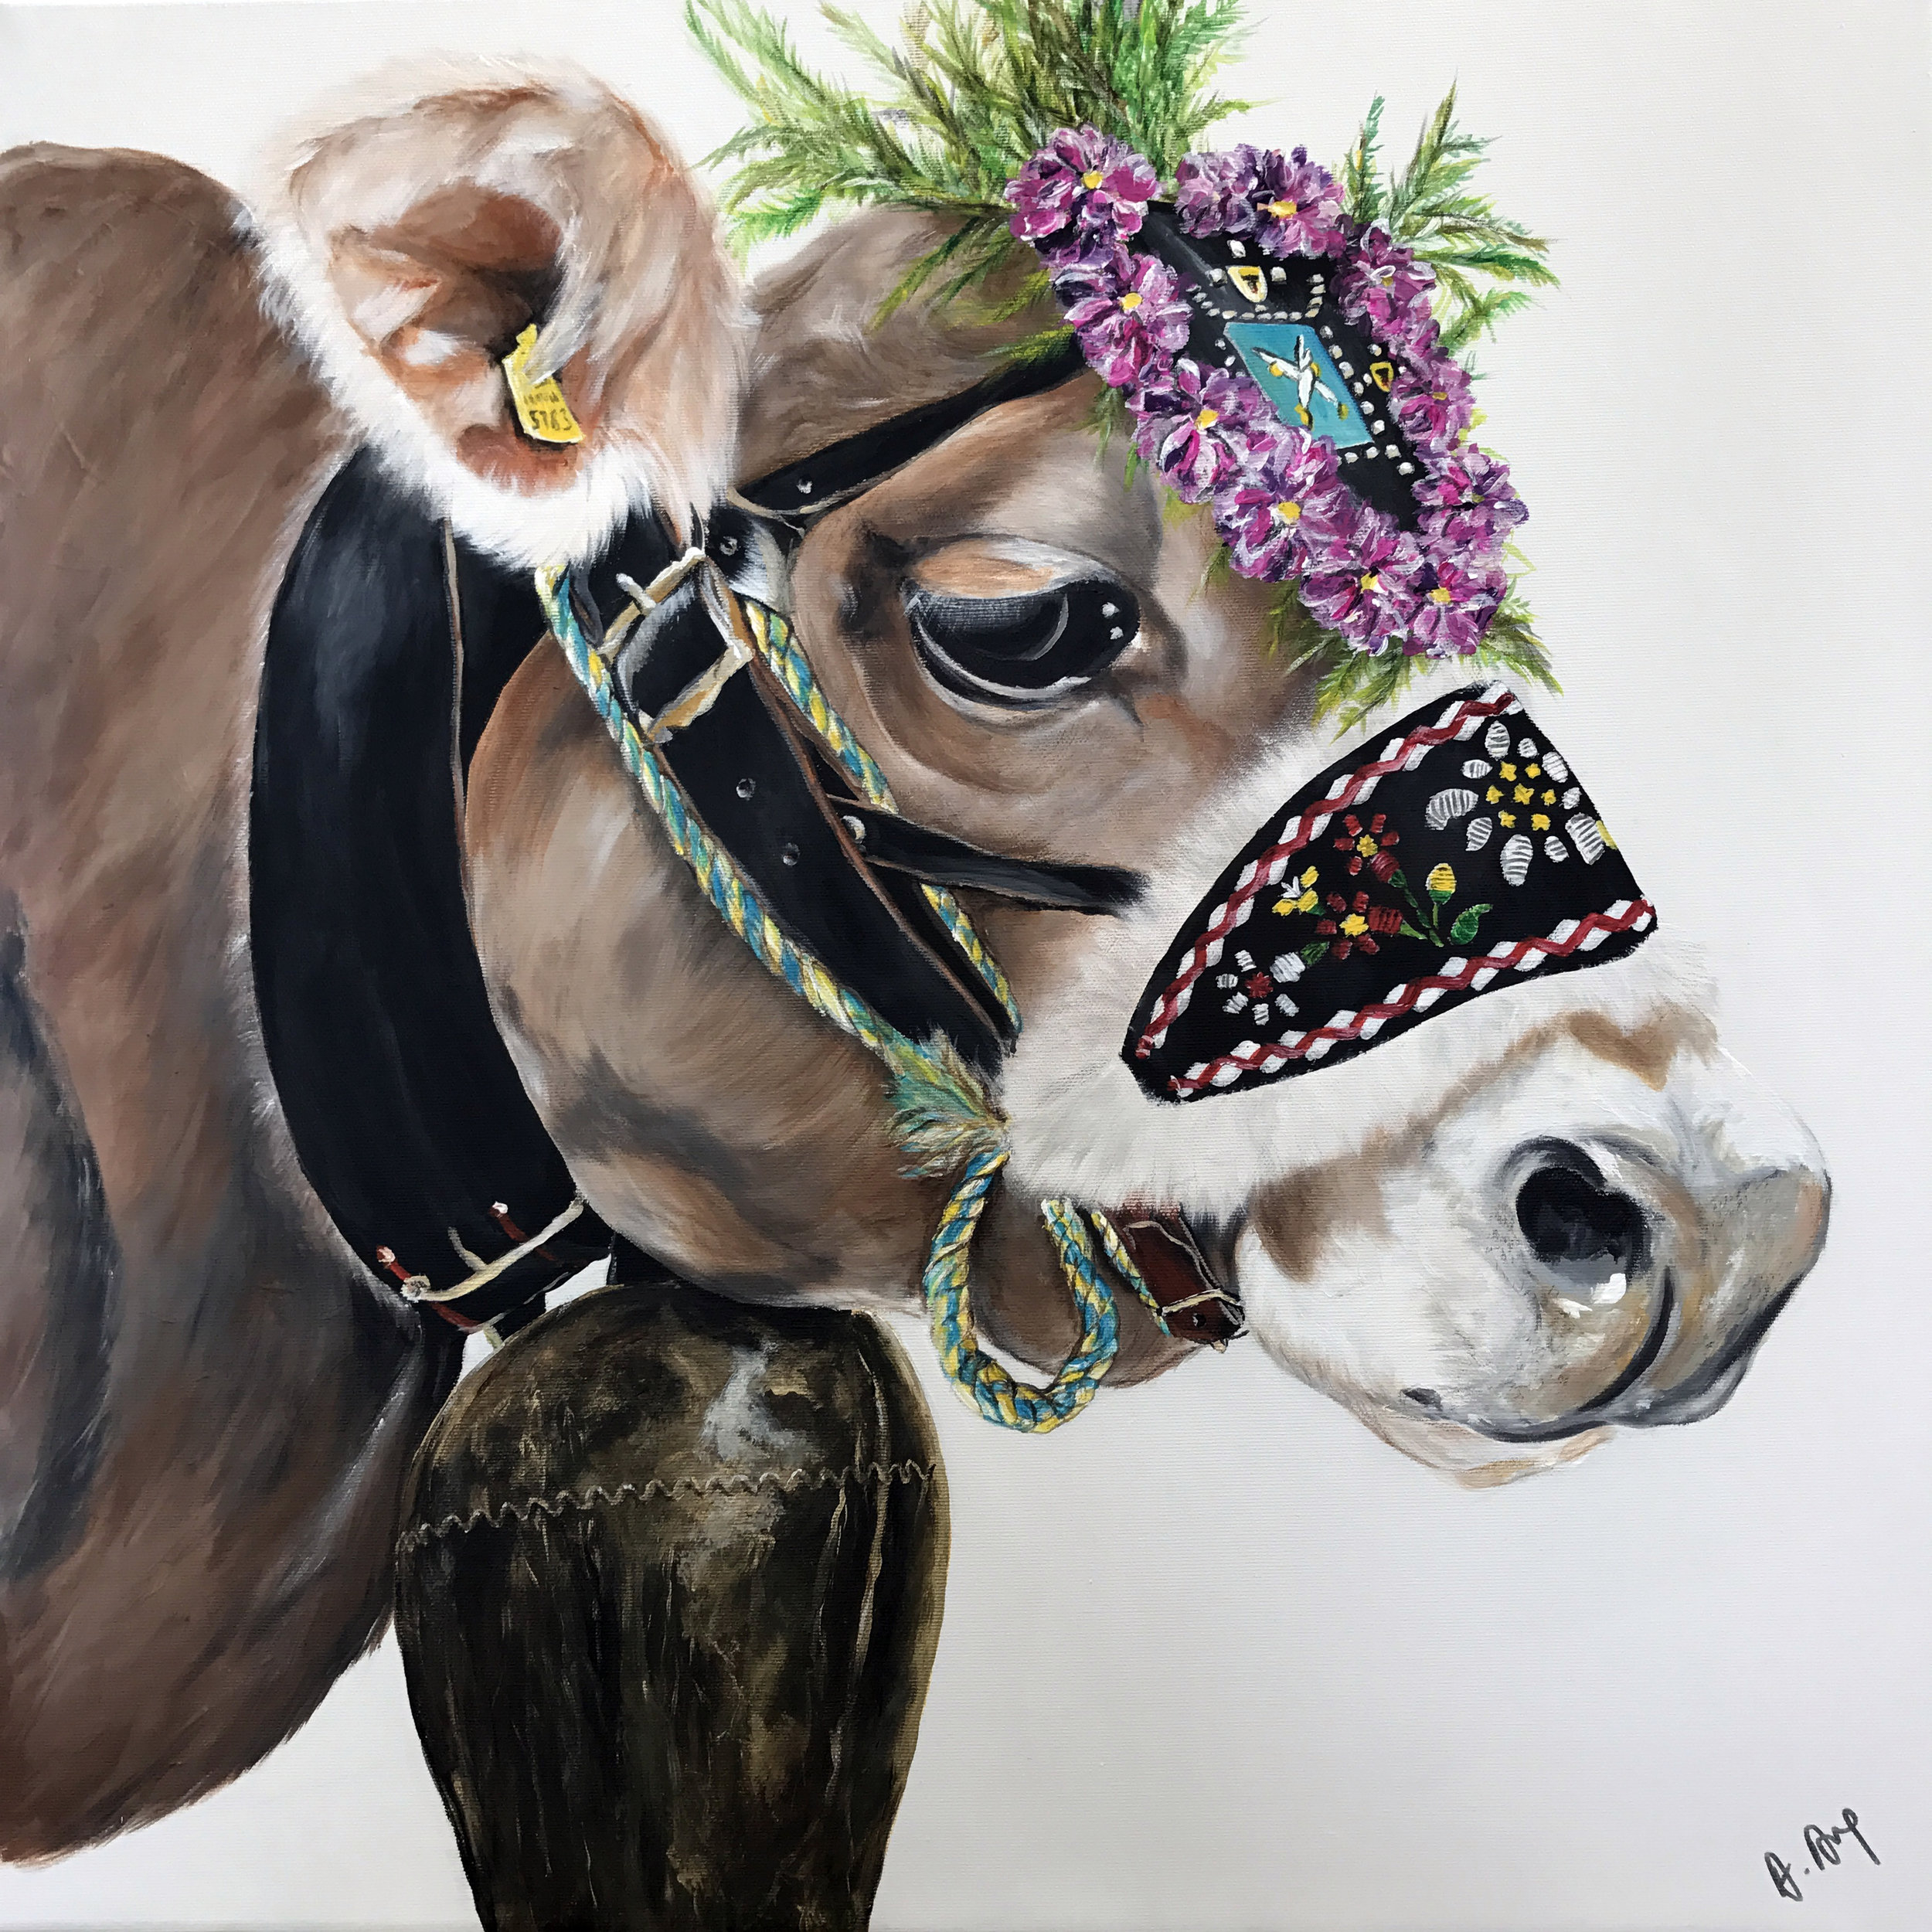 Hippie Cow 60 x 60 (Not for sale)